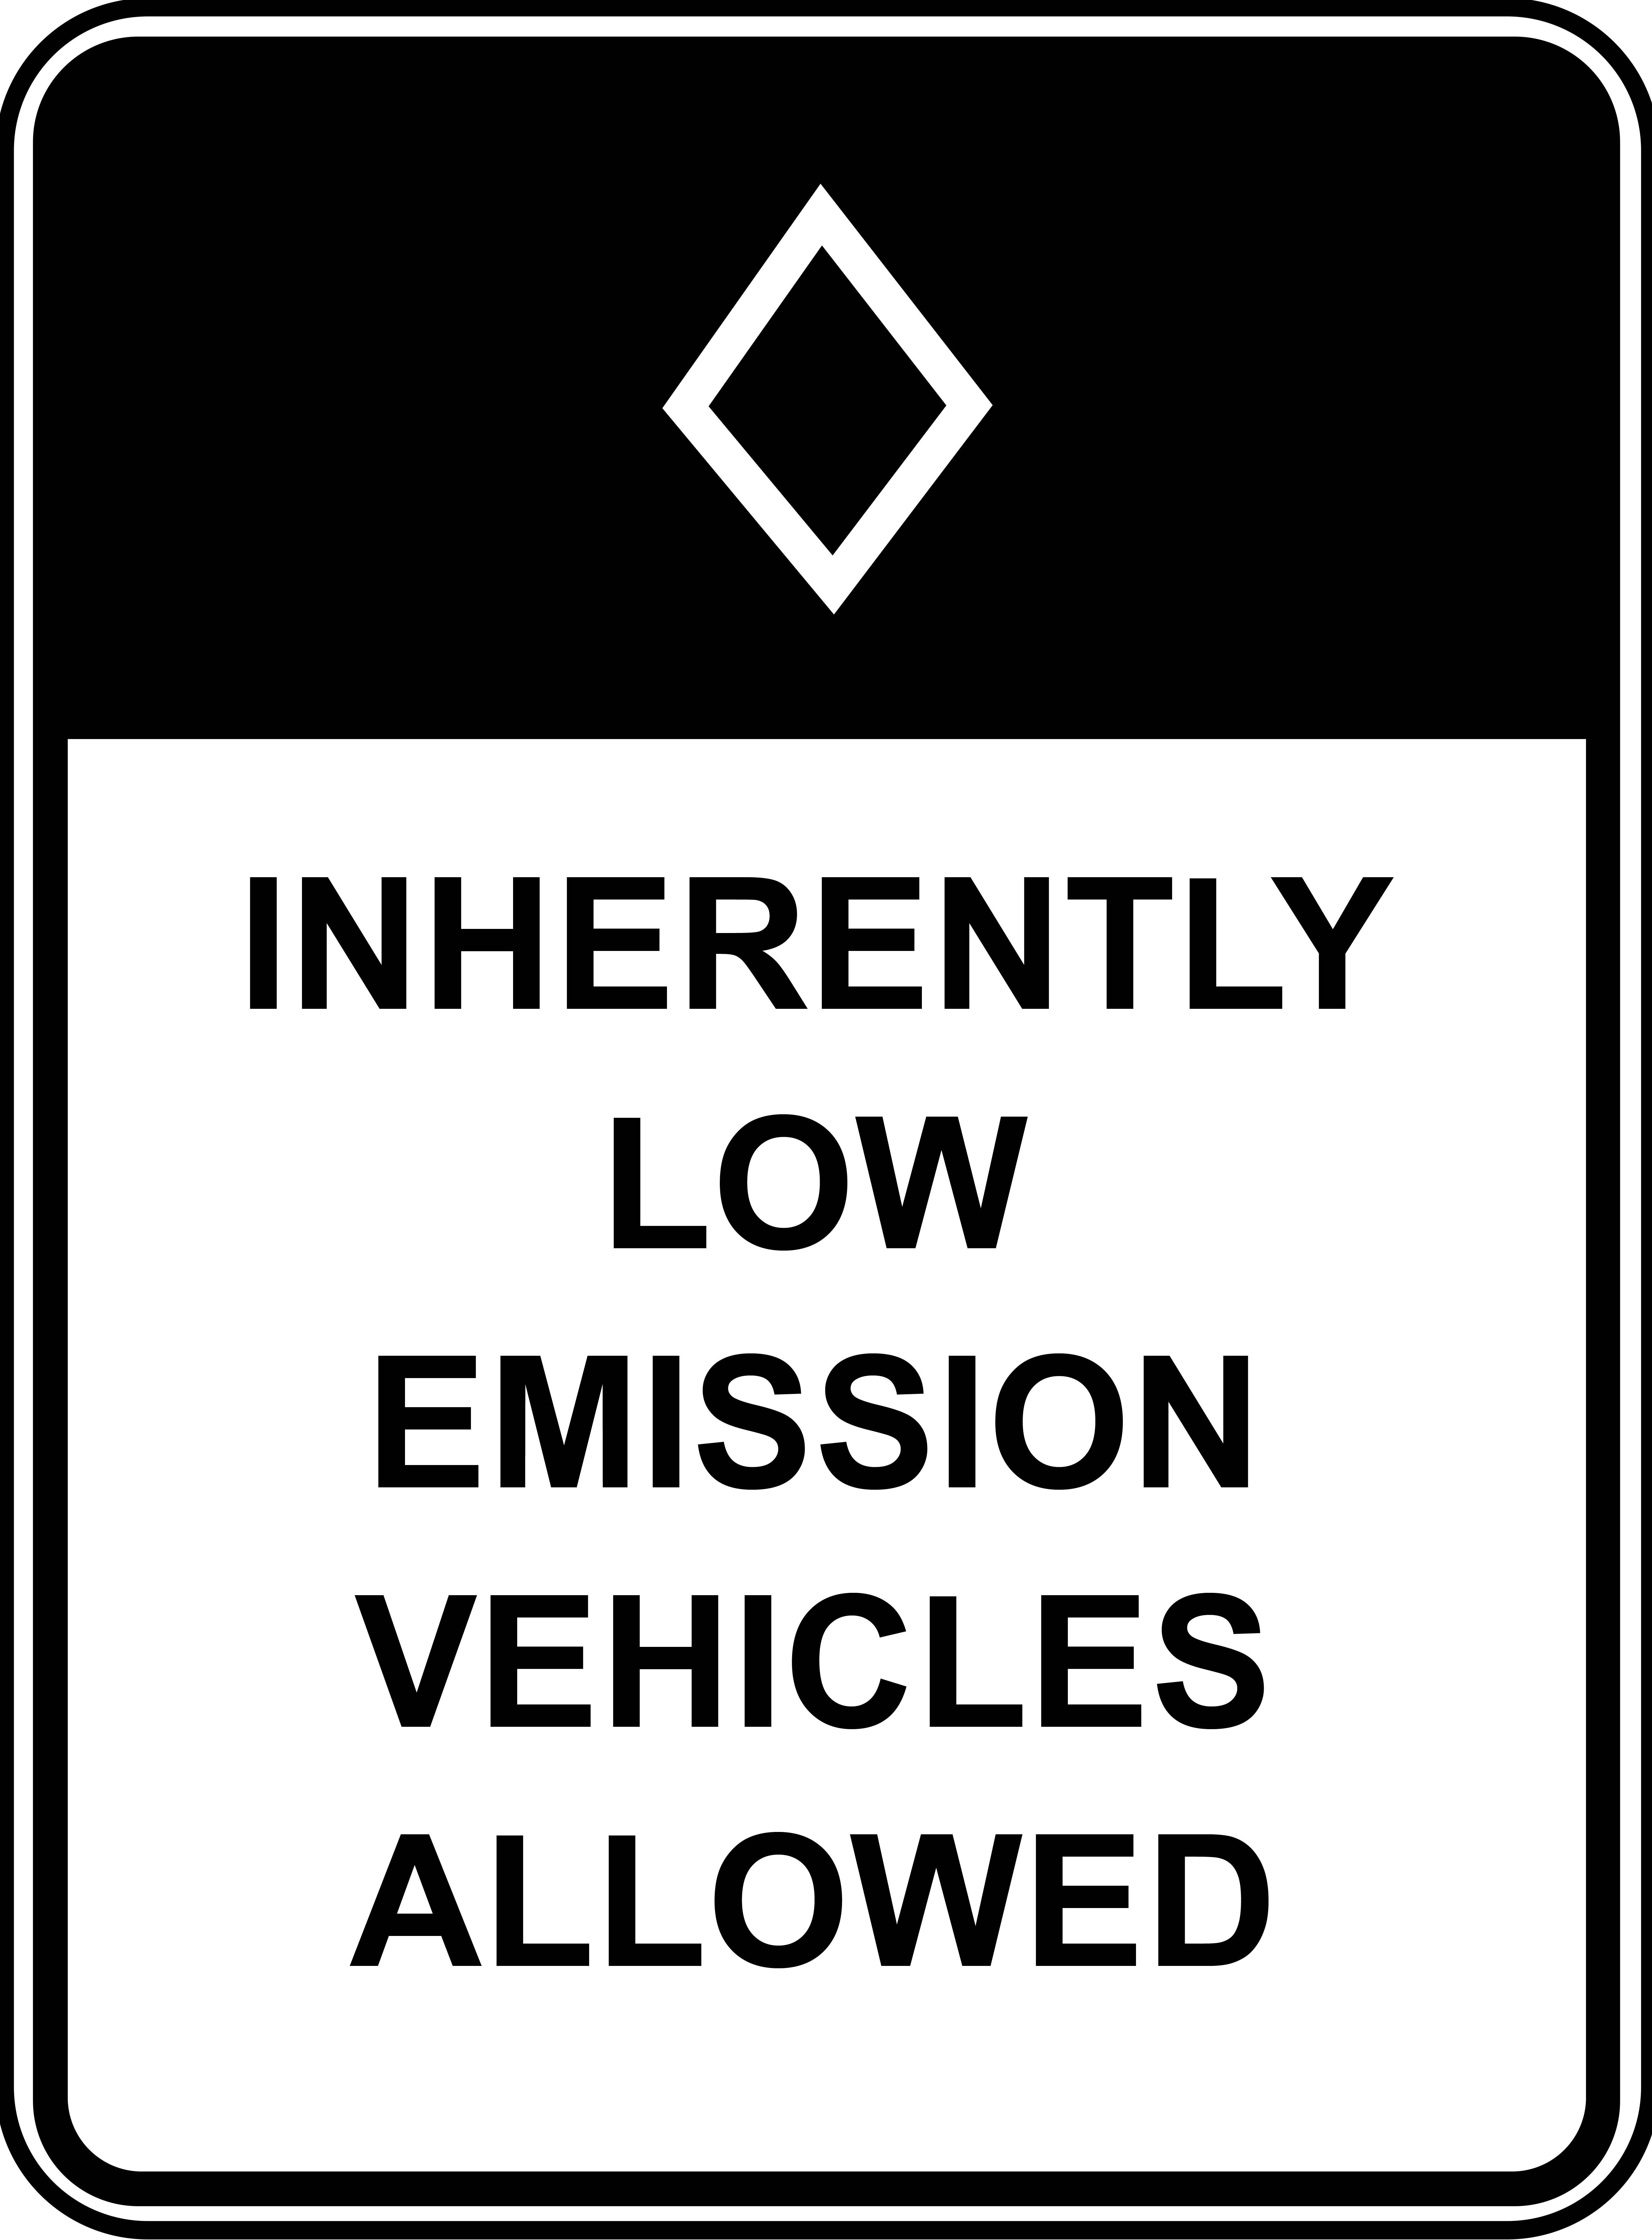 Ingerently low emission vehicles allowed